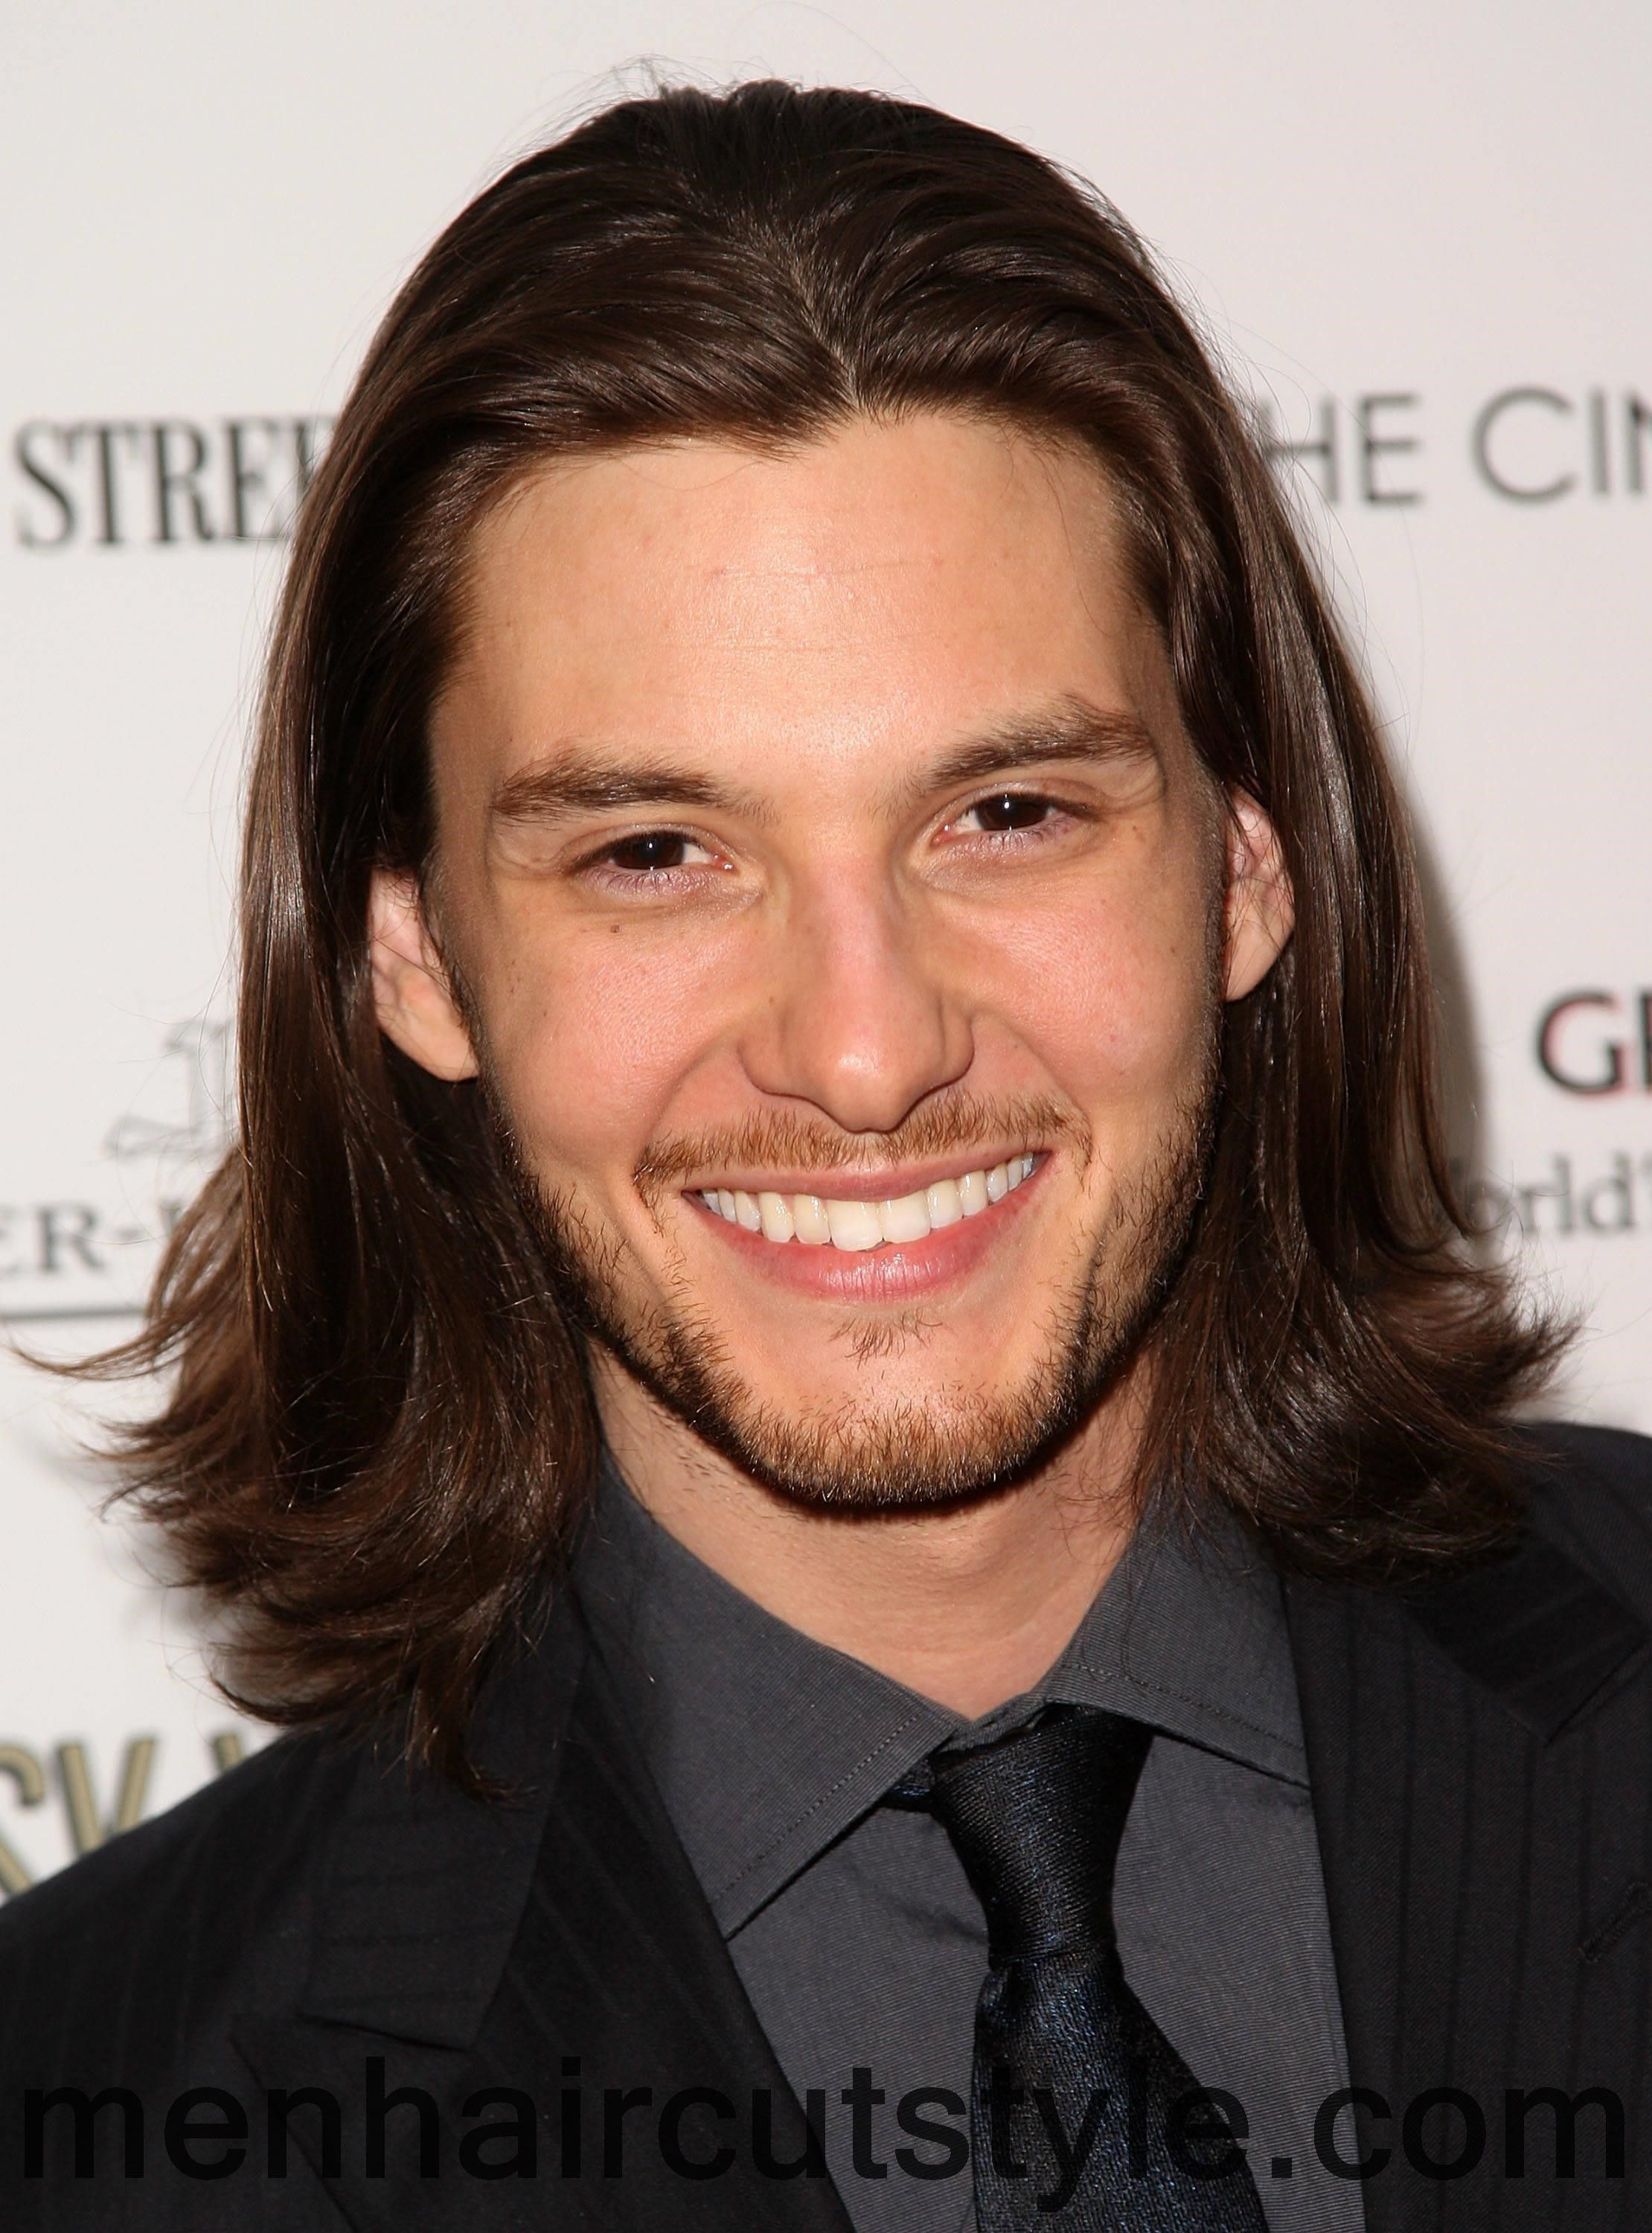 WHAT FACTORS TO CONSIDER WHILE CHOOSING HAIR CUT FOR MEN WITH LONG  HAIR? Check more at http://www.menhaircutstyle.com/what-factors-to-consider-while-choosing-hair-cut-for-men-with-long-hair.html